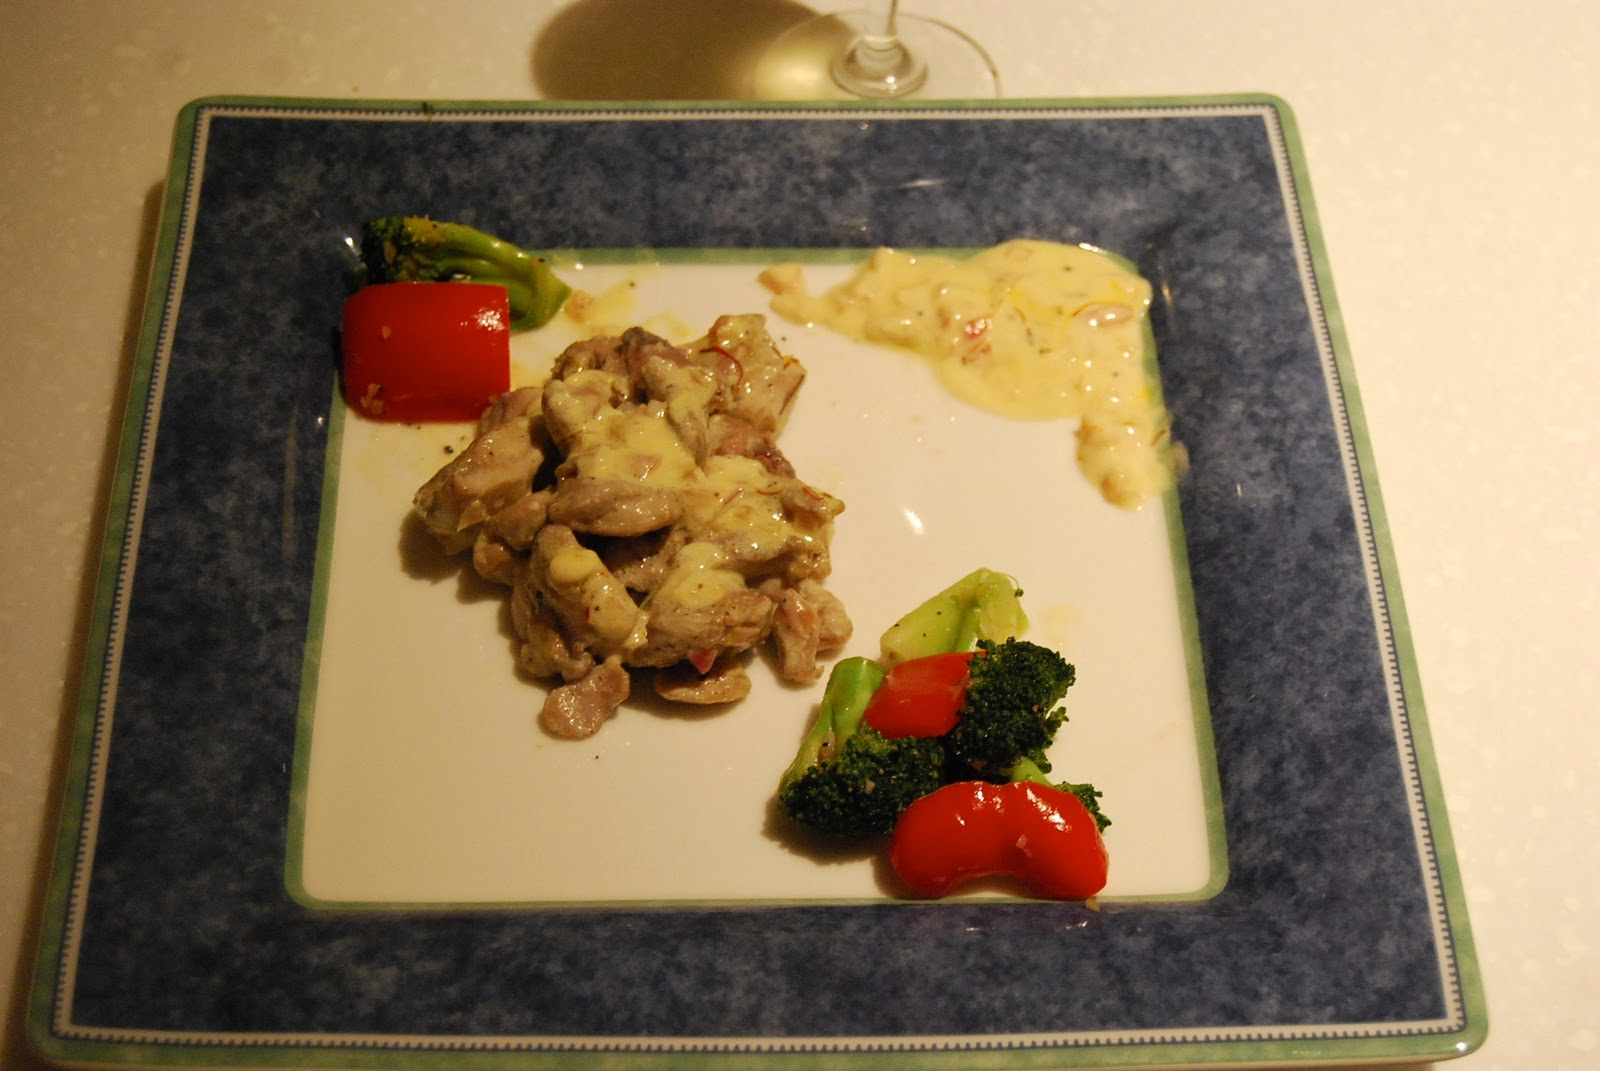 Sikandalous Cuisine: Chicken In Saffron Sauce